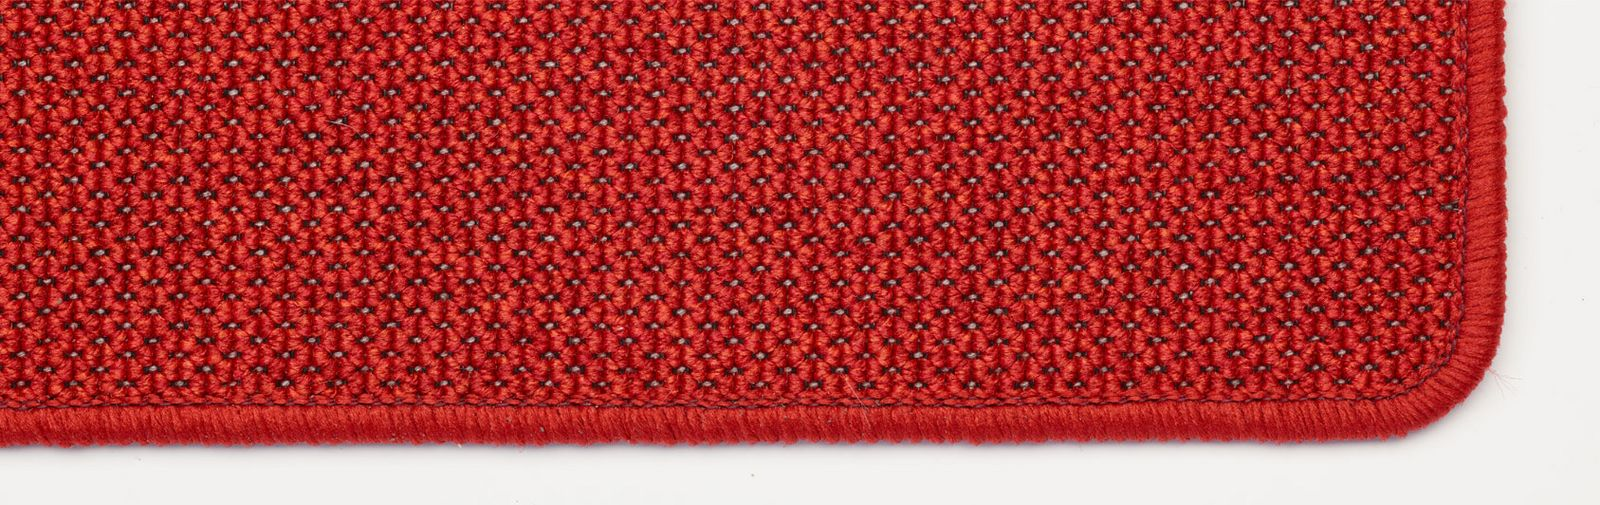 church carpet Eco color code 1970 color light red